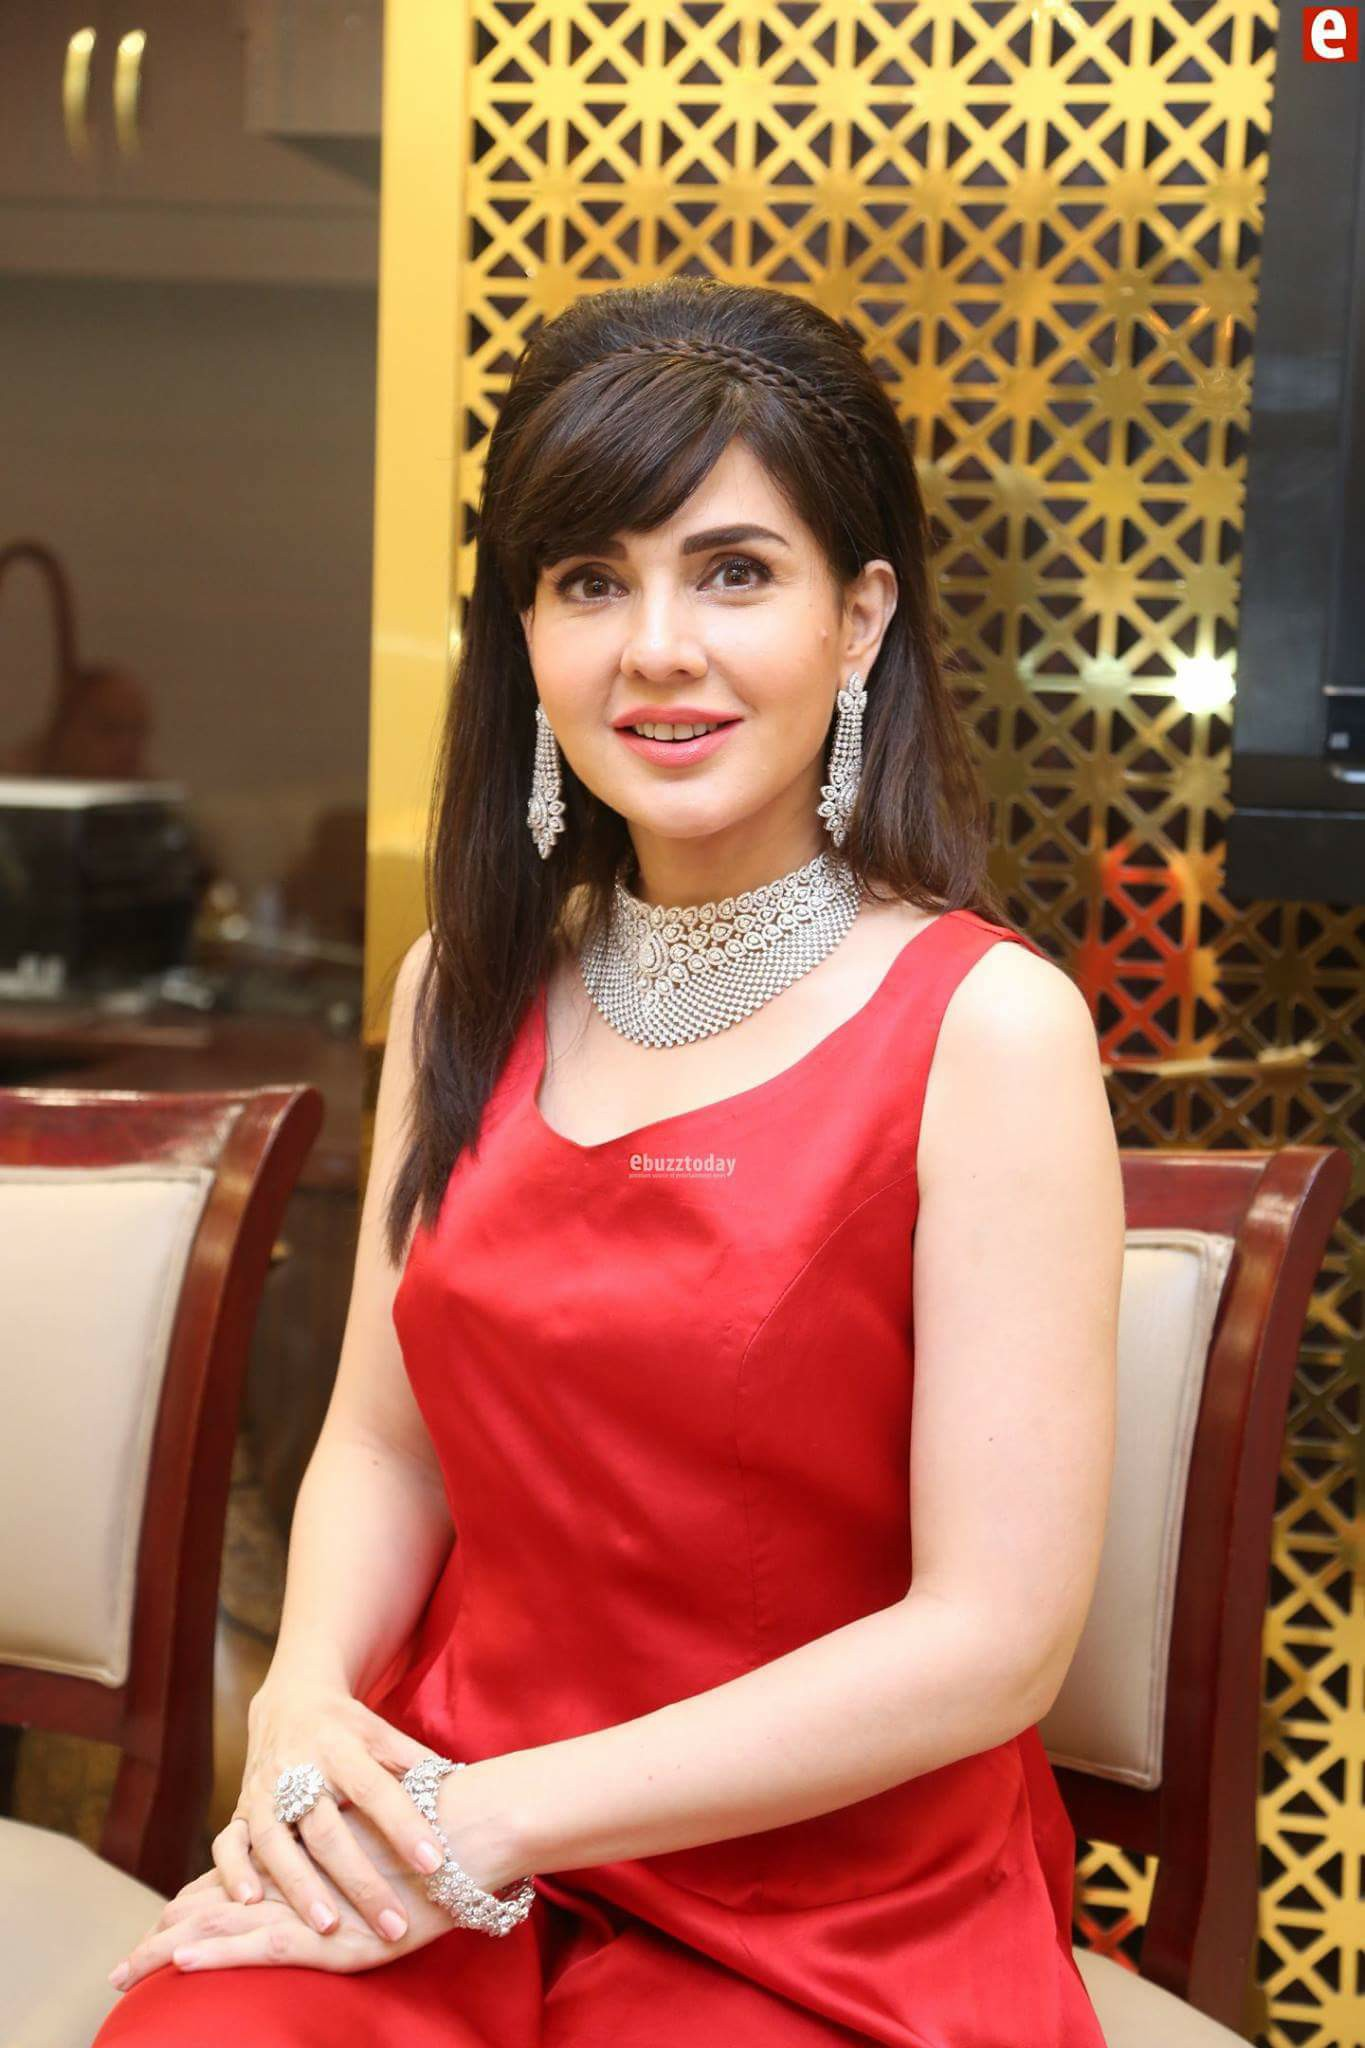 Mahnoor Baloch has always been in the limelight for being evergorgeous. She is the perfect example of maintaining herself at the best even at the age of 50. Take a look at these clicks that will leave you bedazzled!